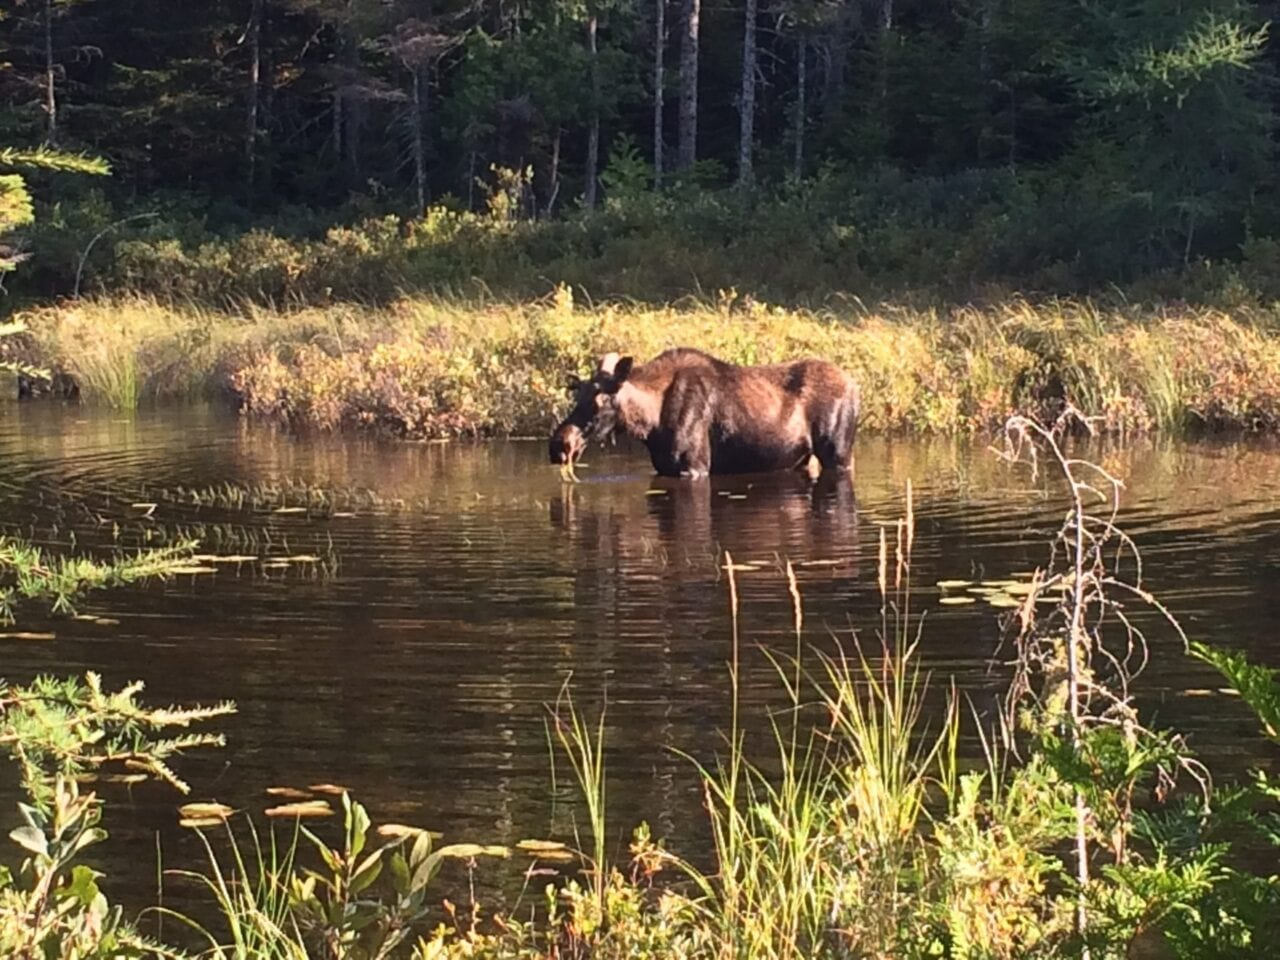 A moose wades through a pond.